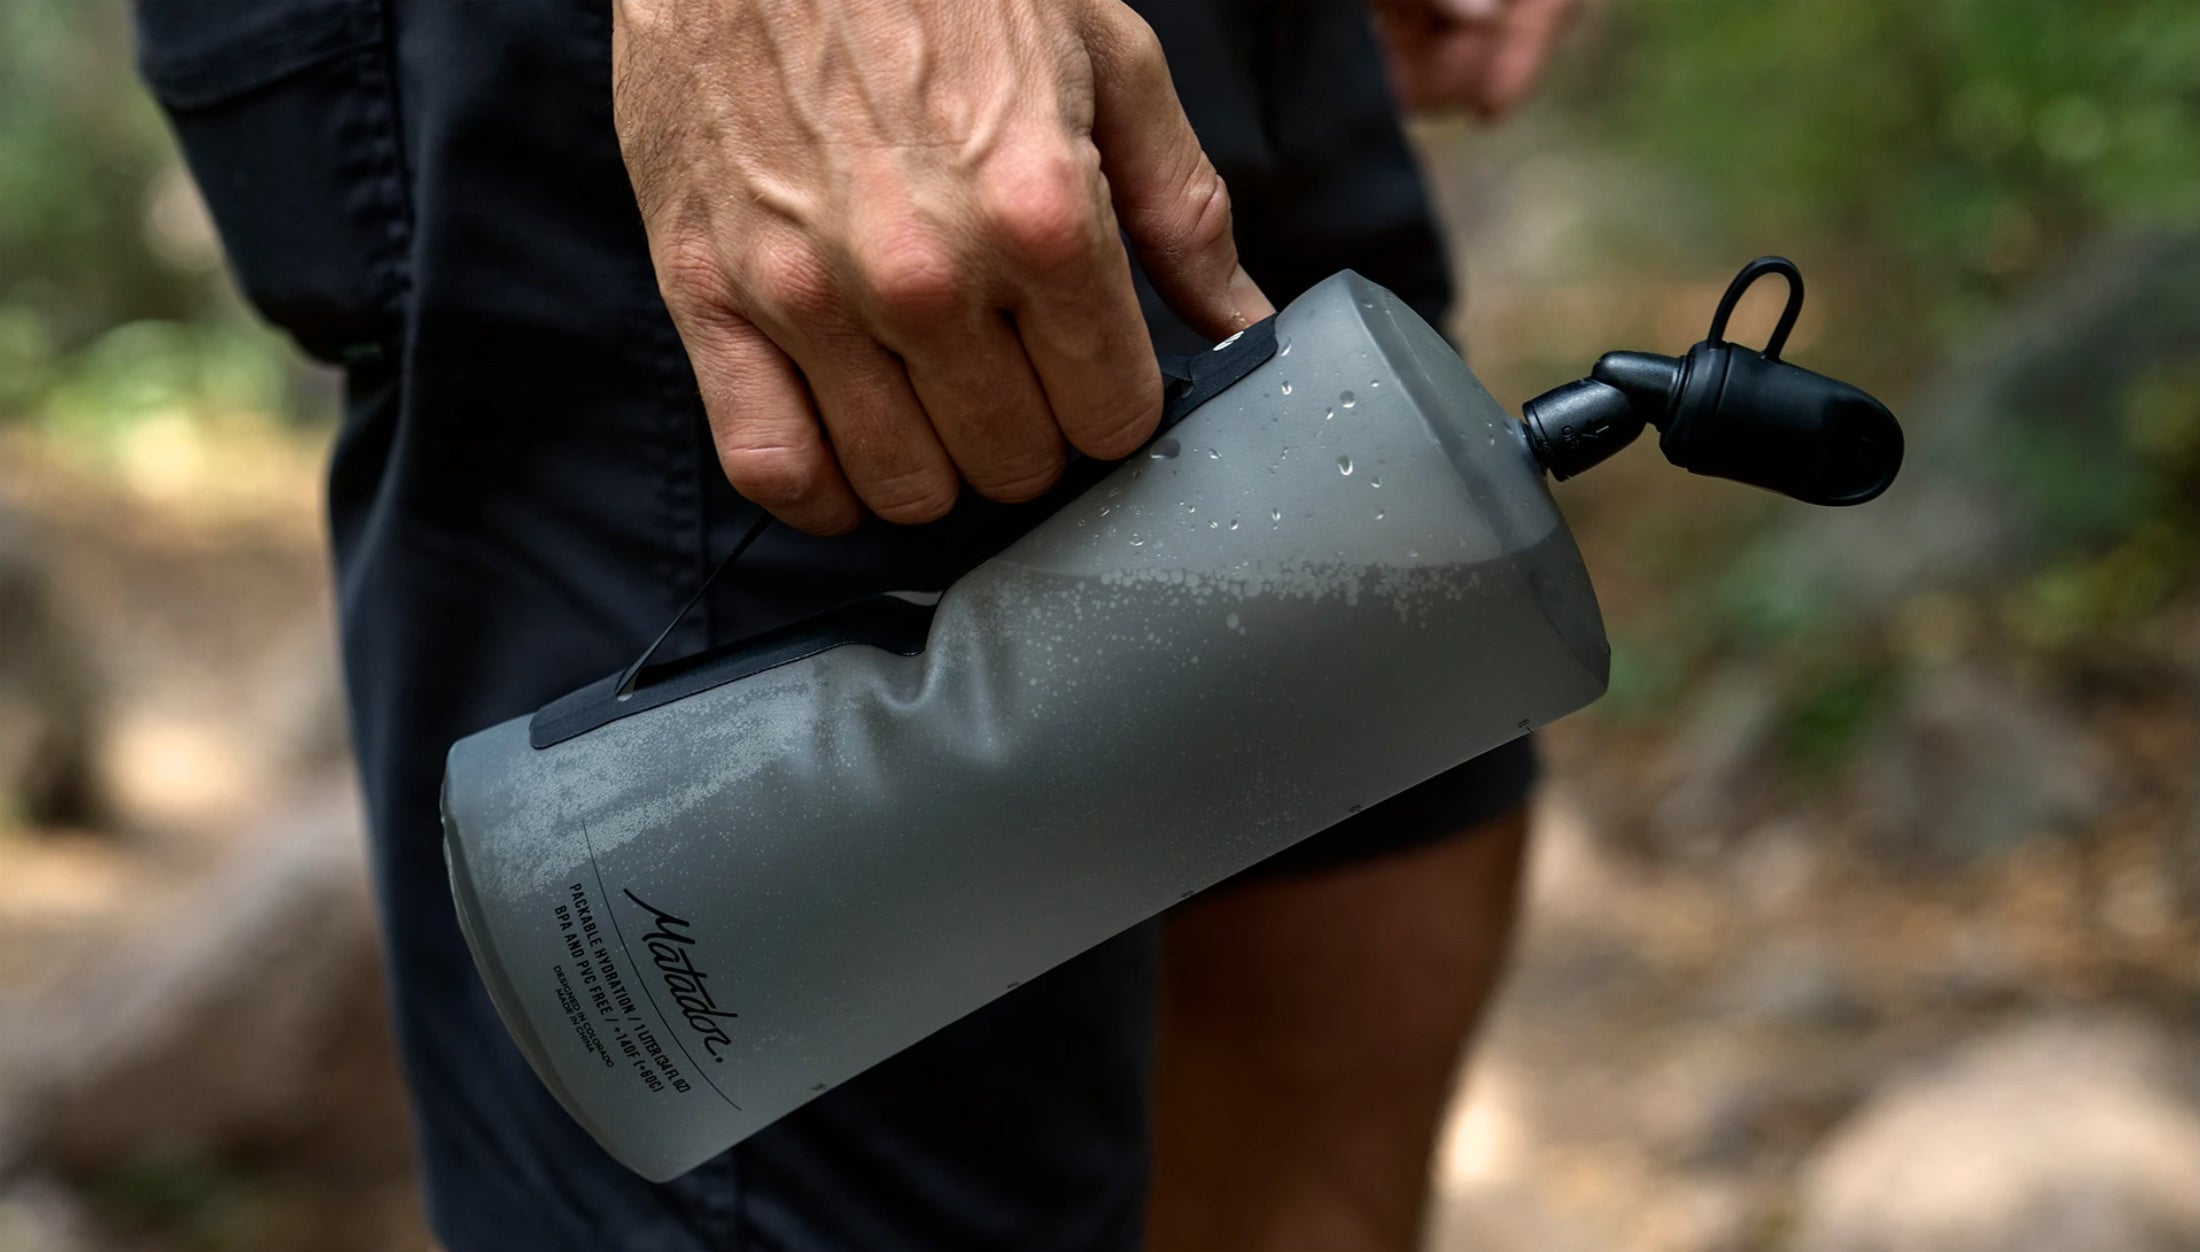 Man hiking, holding full water bottle from carry handle